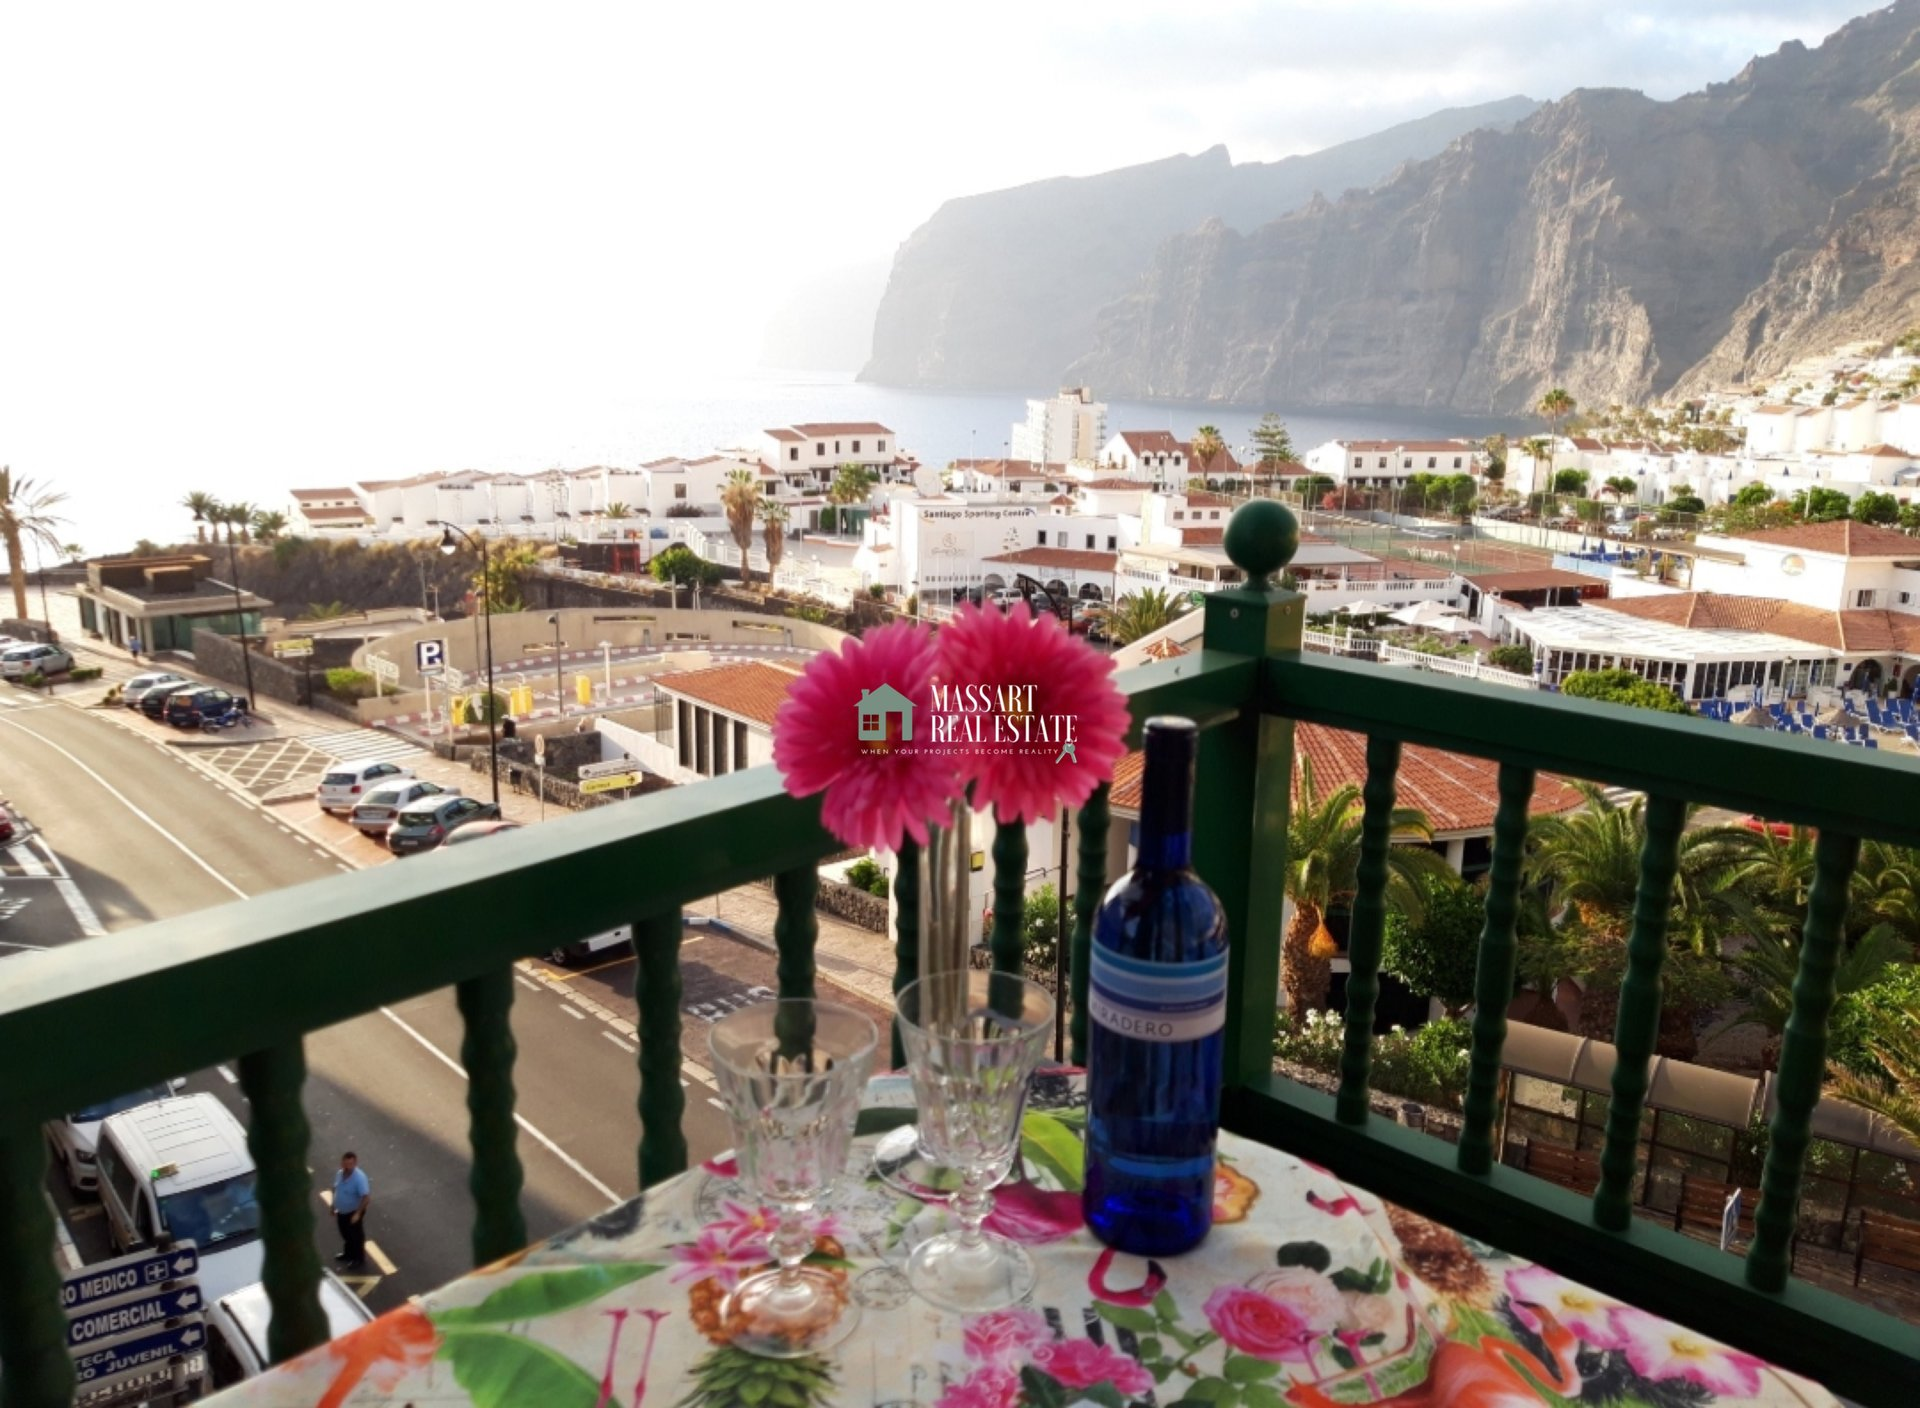 For rent in the wonderful coastal area of Puerto De Santiago, furnished apartment of 80 m2 with wonderful views of Los Acantilados de Los Gigantes.